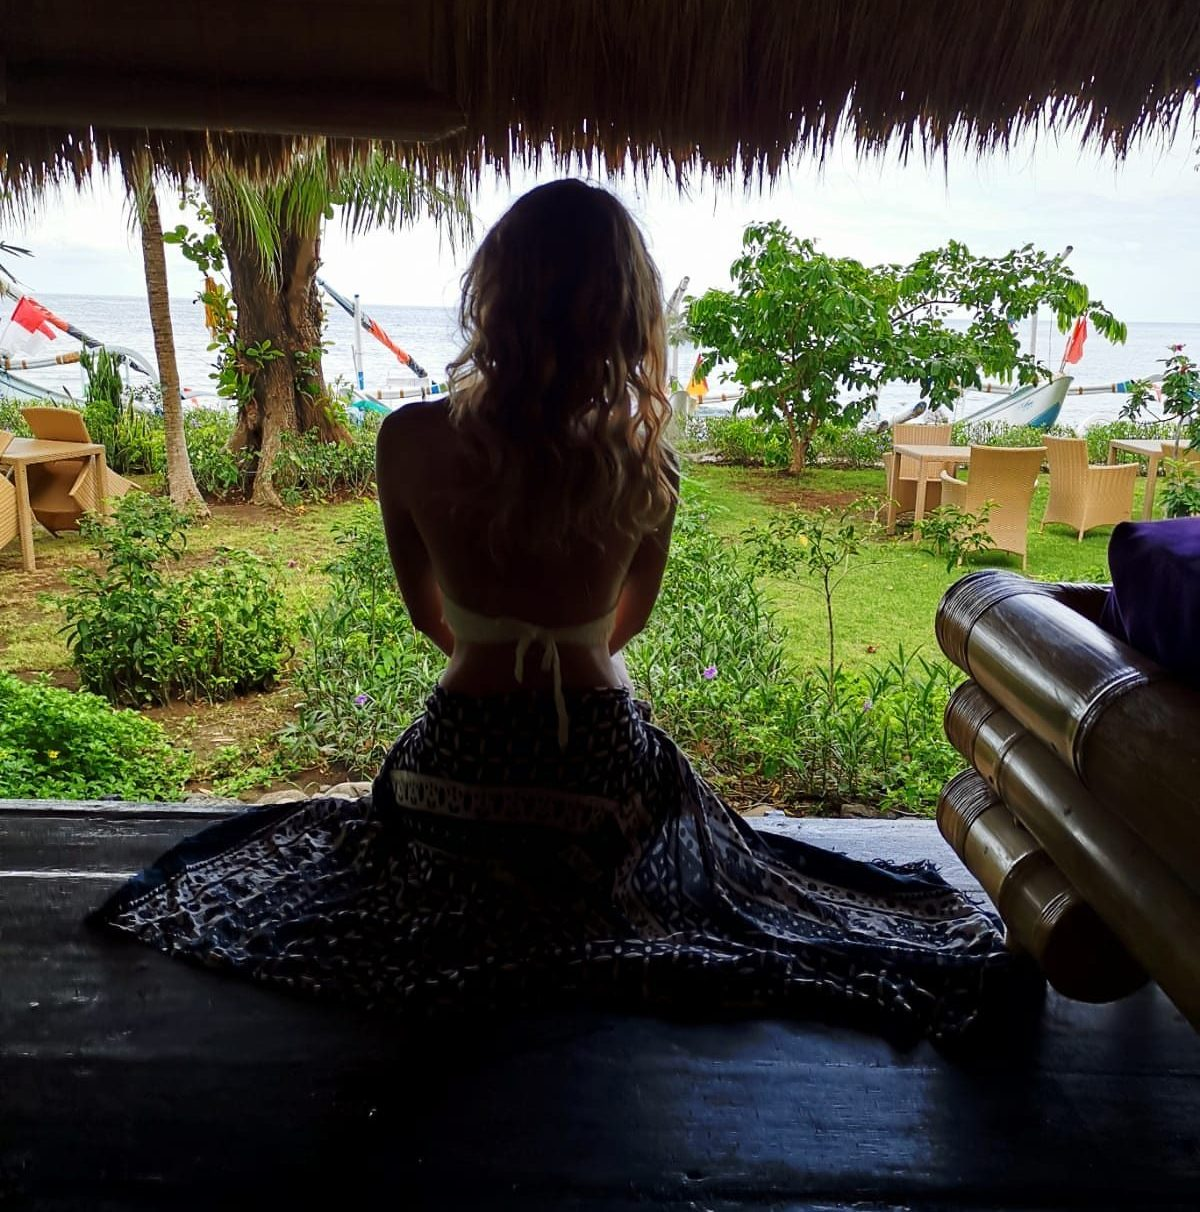 Good karma bungalow amed Bali, girl sitting on the floor.